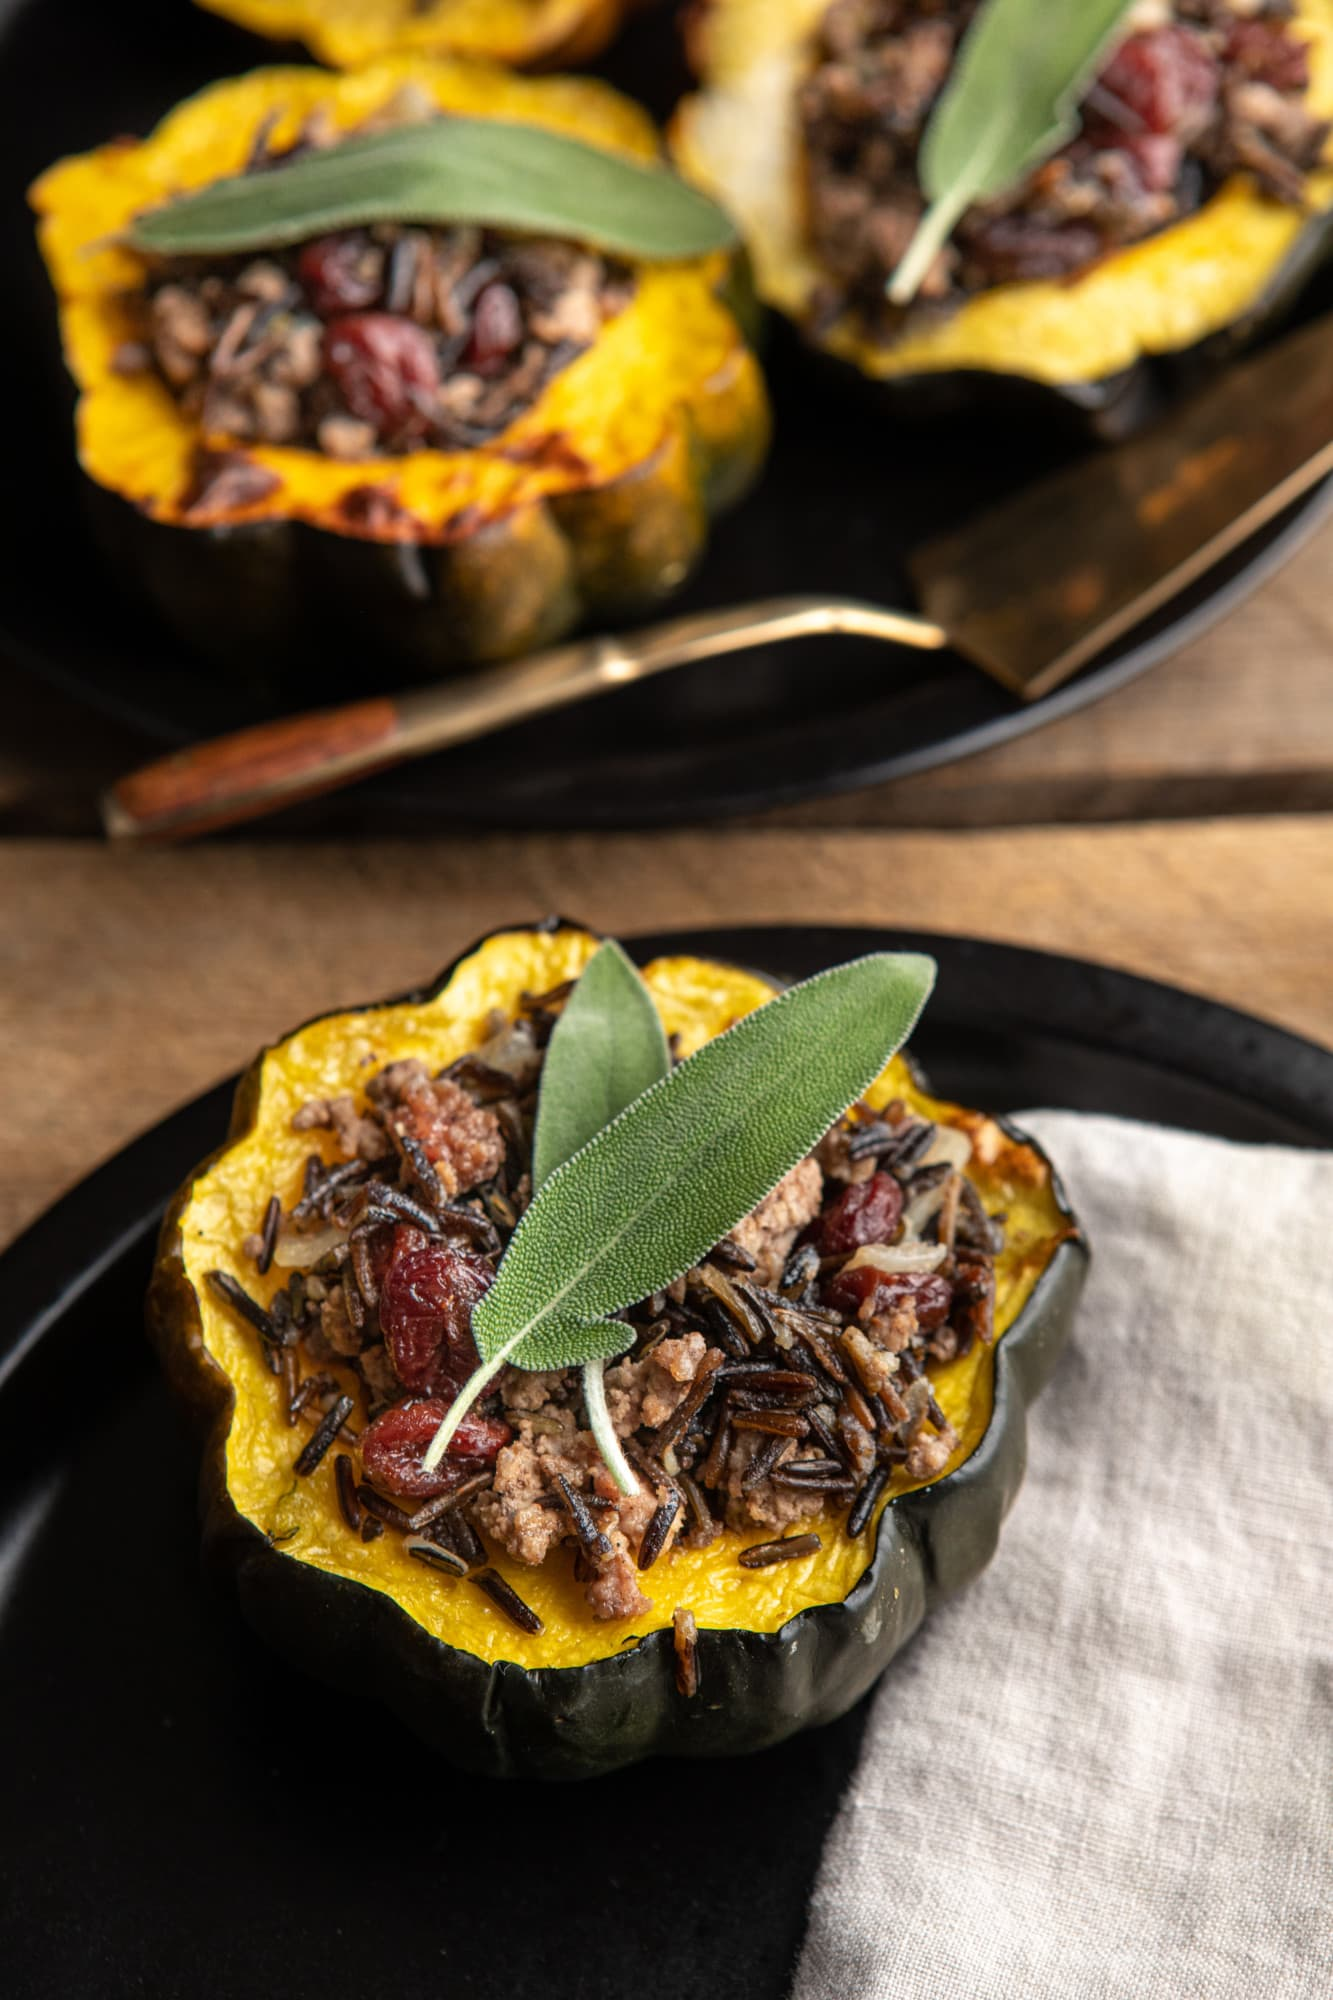 Stuffed squash from Stacey Brugeman